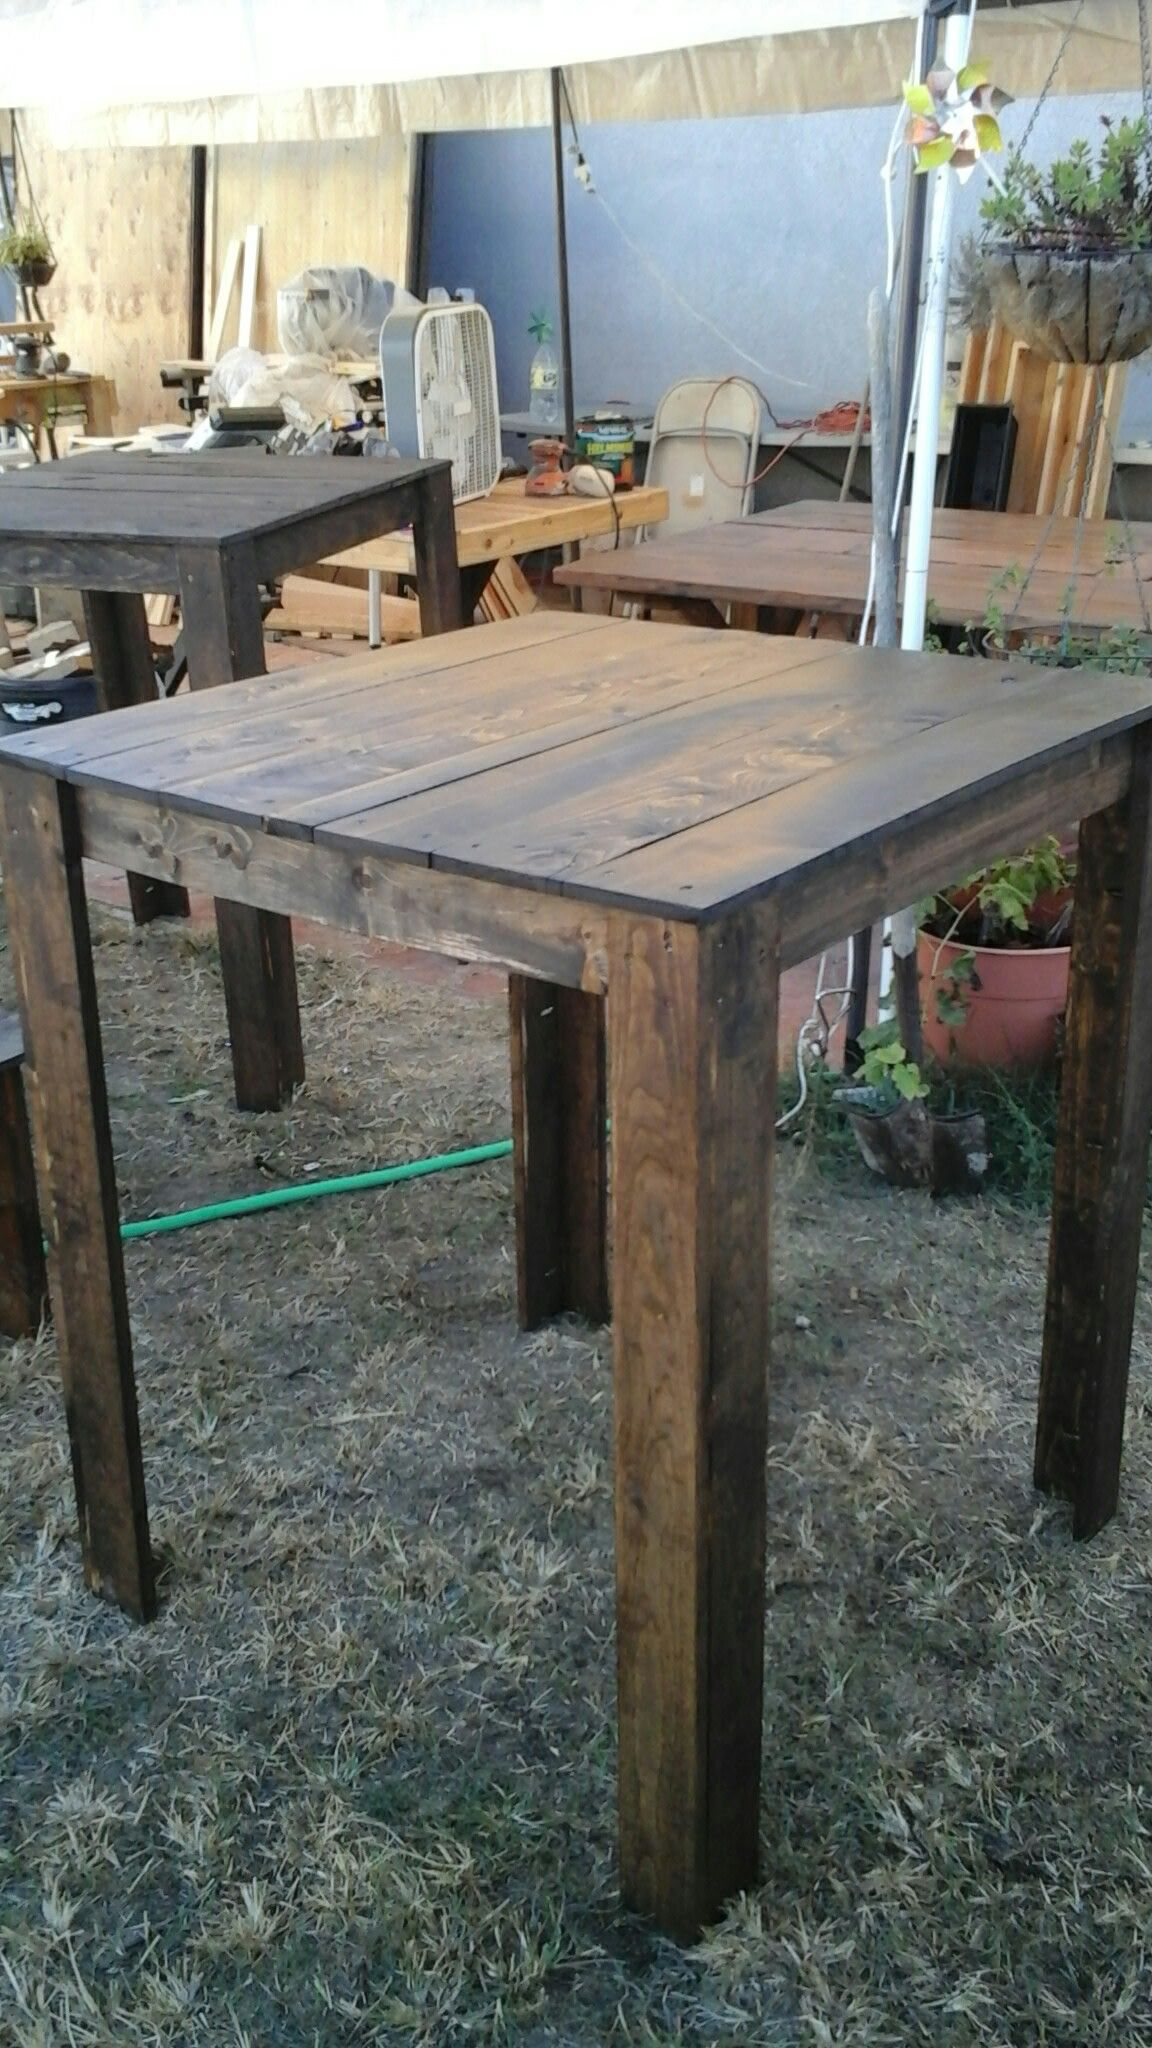 42inch Tall Bar Table That Is 3ft Square Dining Table Rustic